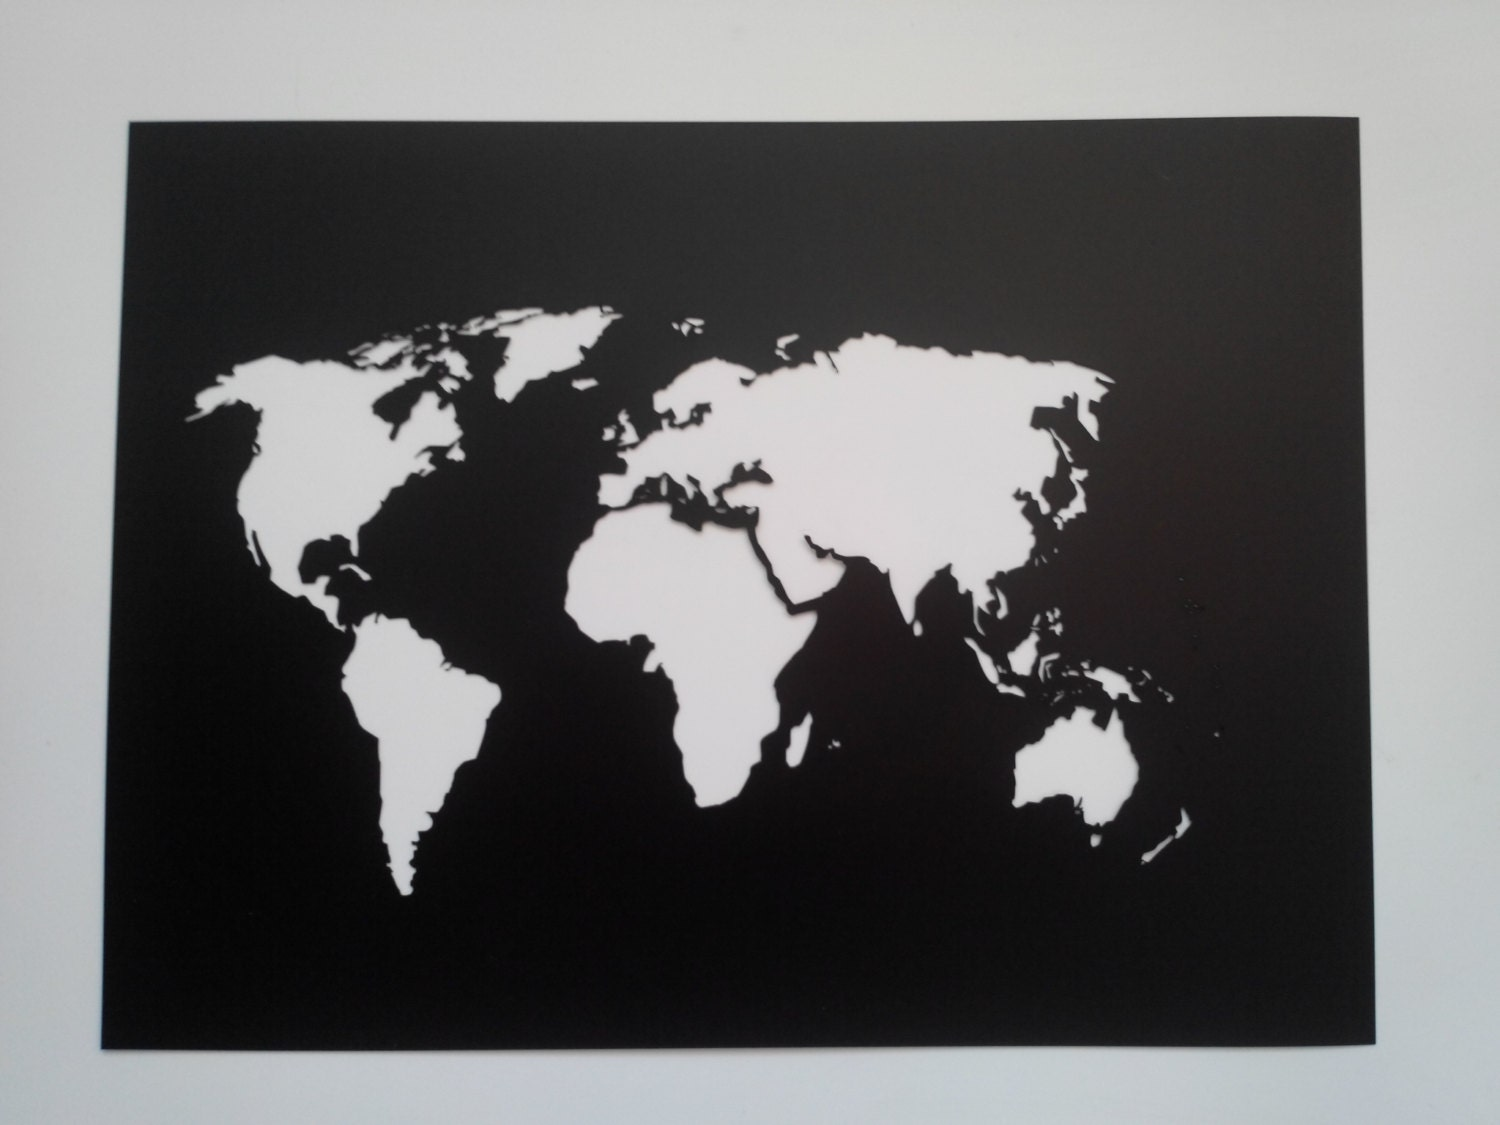 World map stencil plastic reusable painting art supply zoom gumiabroncs Gallery